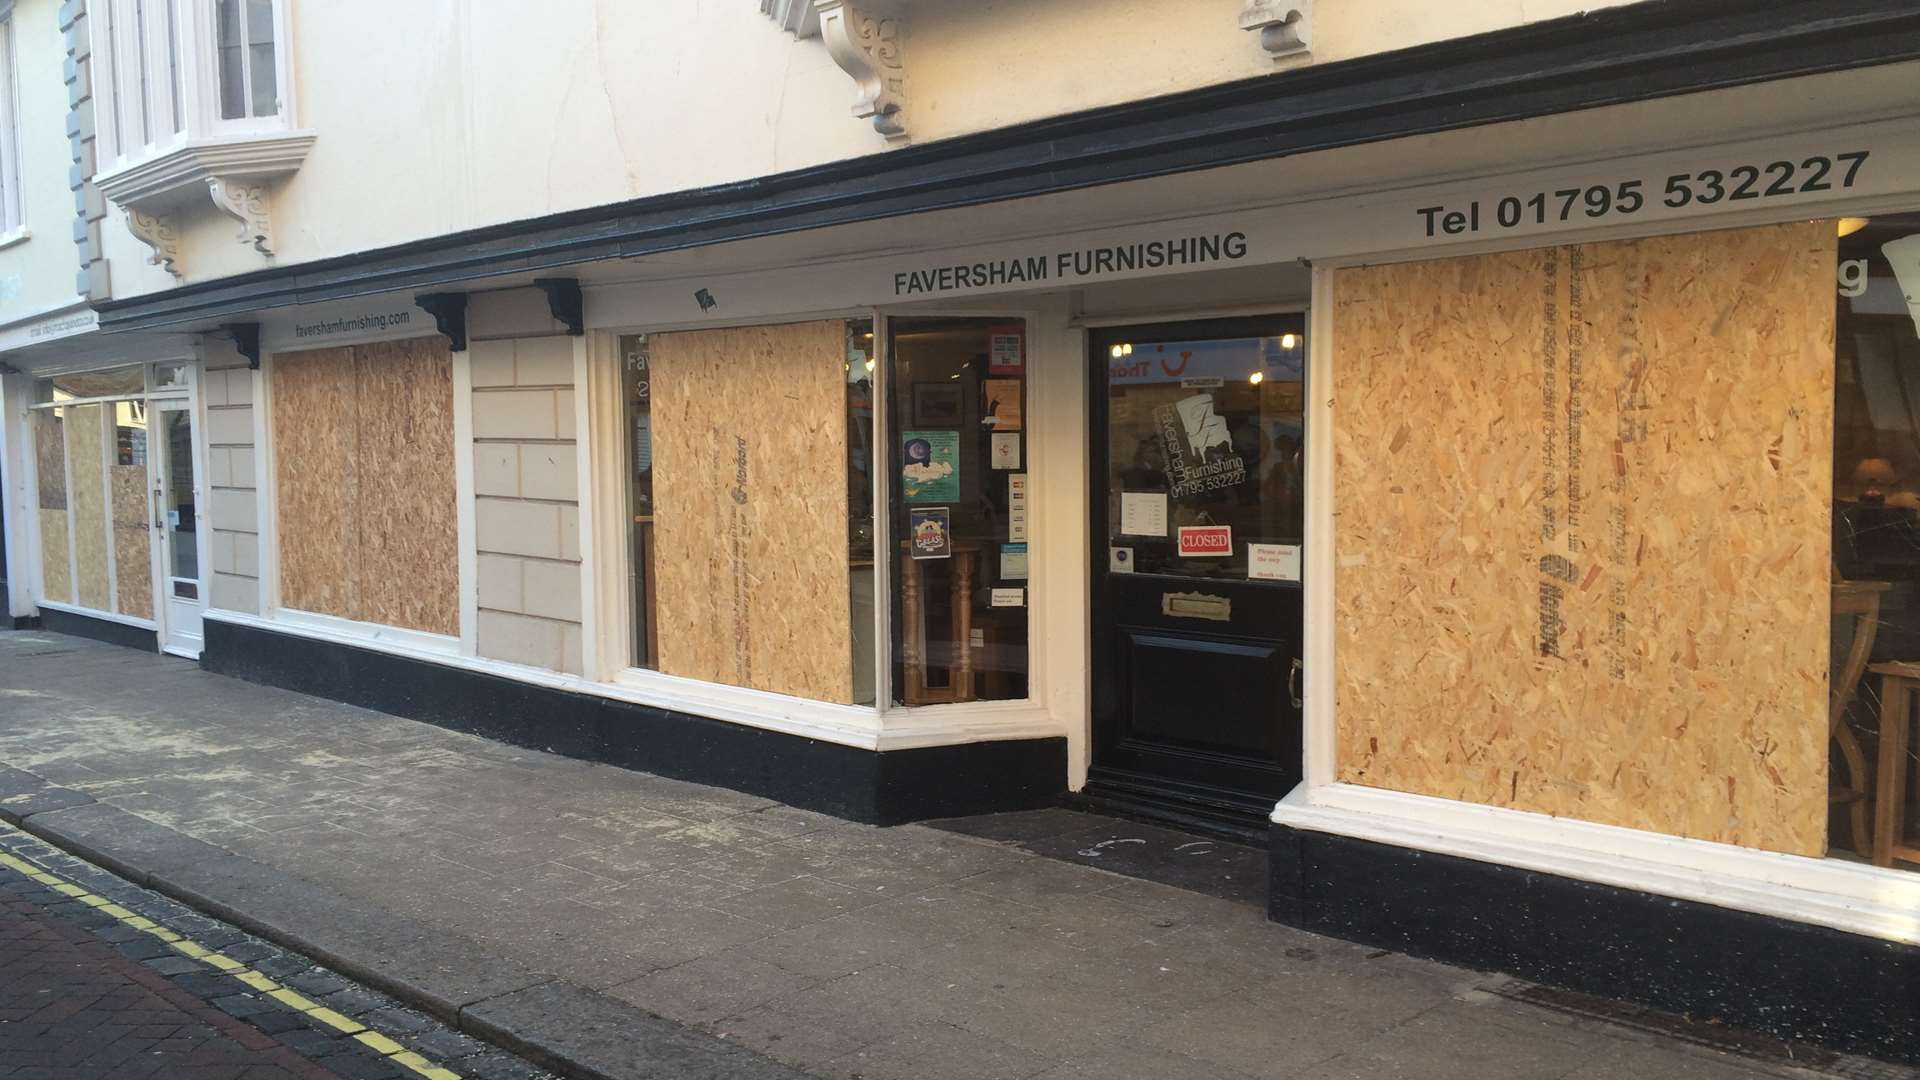 Independent business Faversham Furniture had all of its windows smashed.